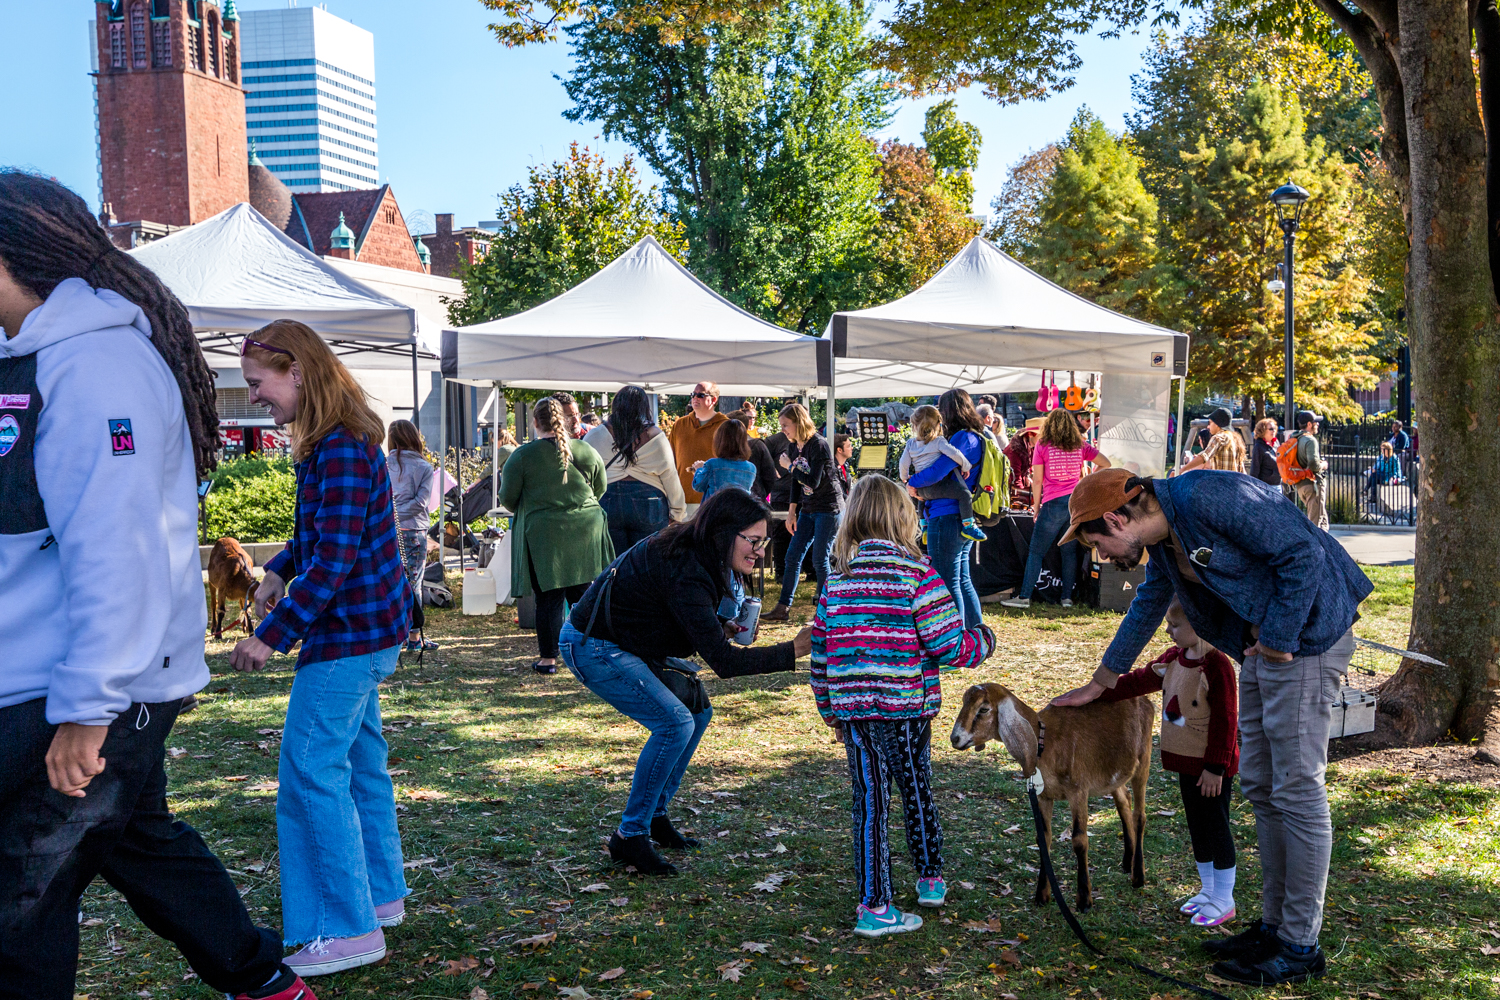 Fall Fest at Washington Park took place on the weekend of October 26-27. The family-friendly event was packed with pumpkins, seasonal activities, a petting zoo, live music, and dozens of local vendors selling crafts and homemade goods. / Image: Catherine Viox // Published: 10.28.19